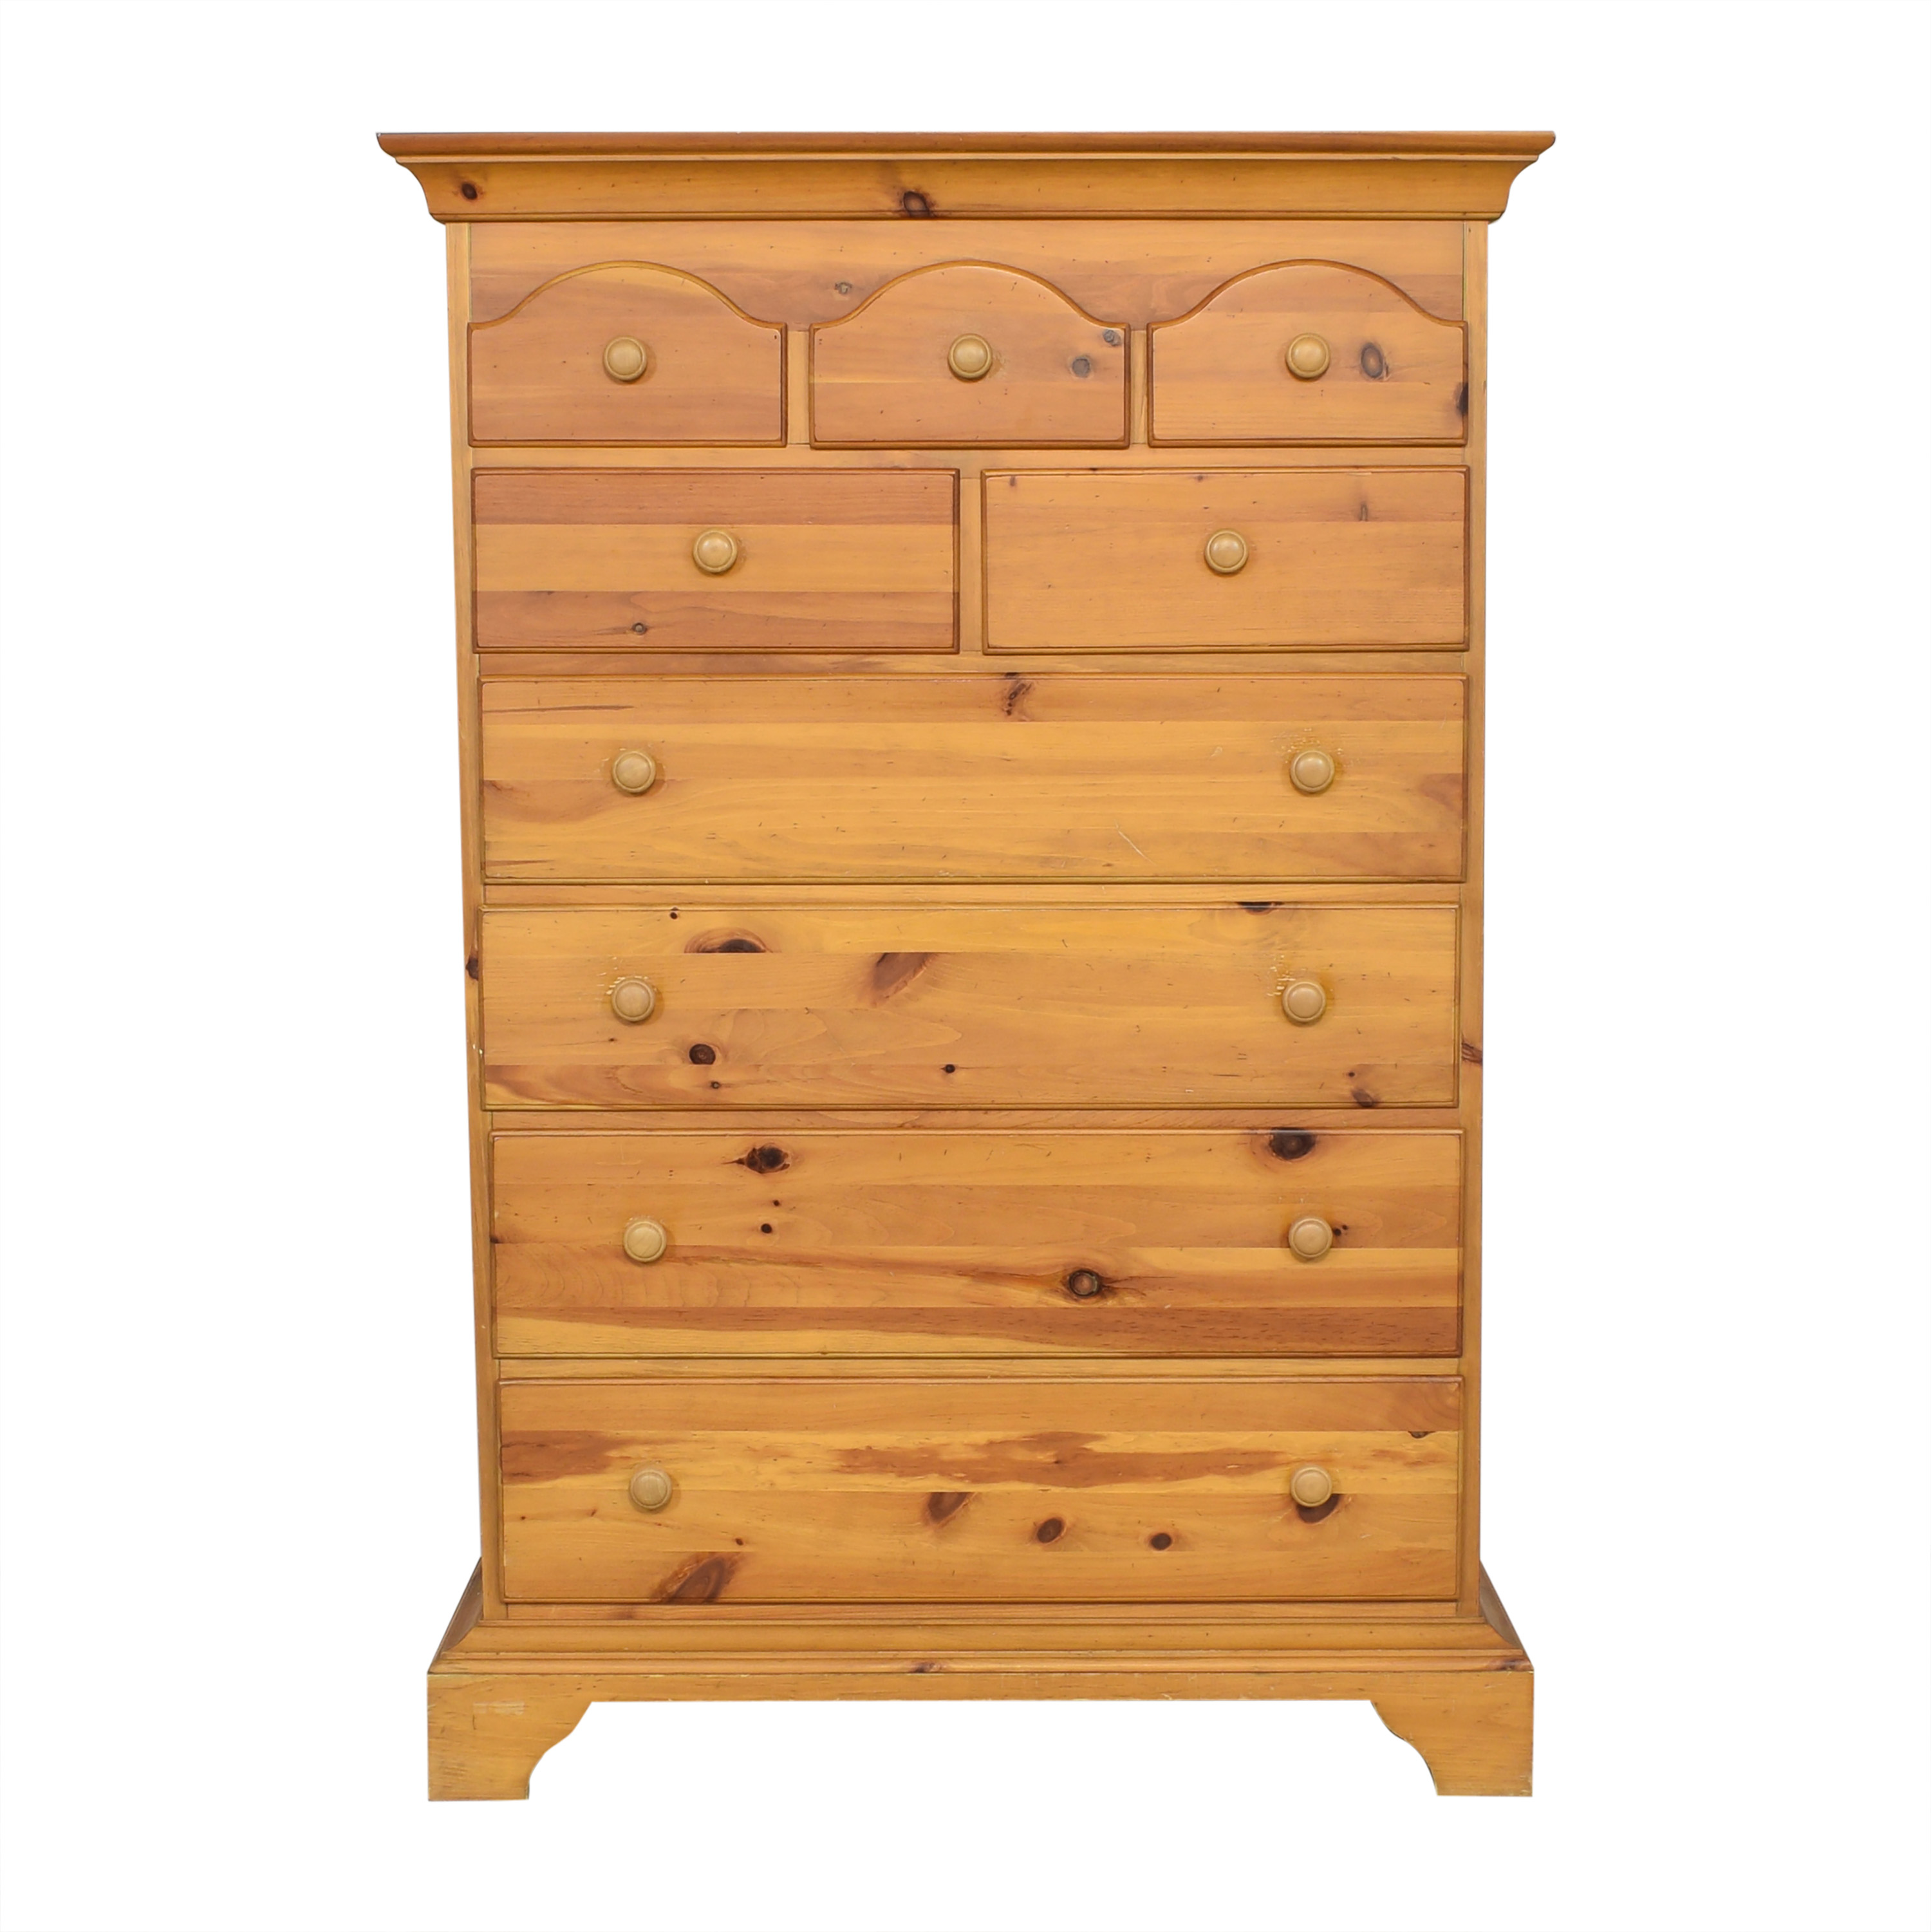 Thomasville Country Inns and Back Roads Collection Dresser Thomasville